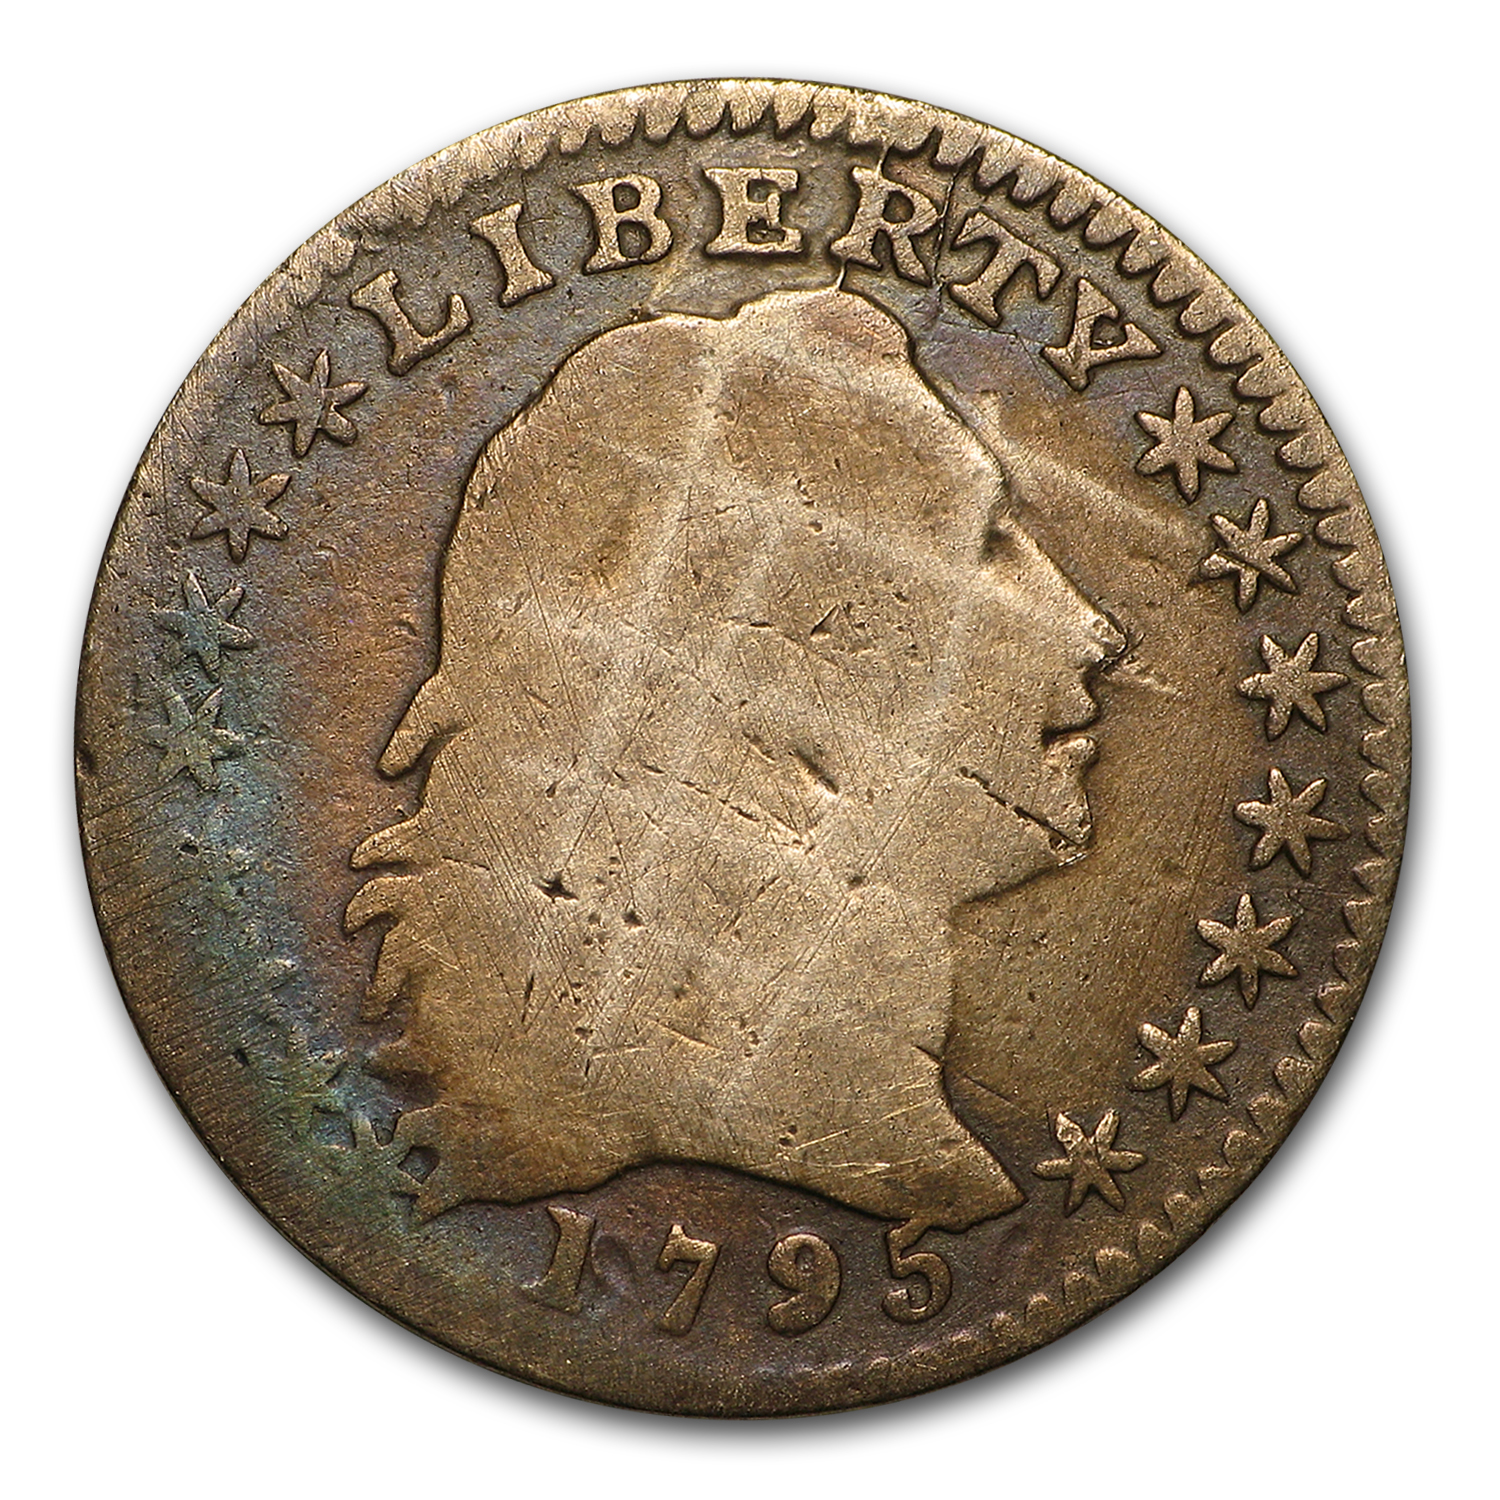 1795 Flowing Hair Half Dime Good Details (Damaged)